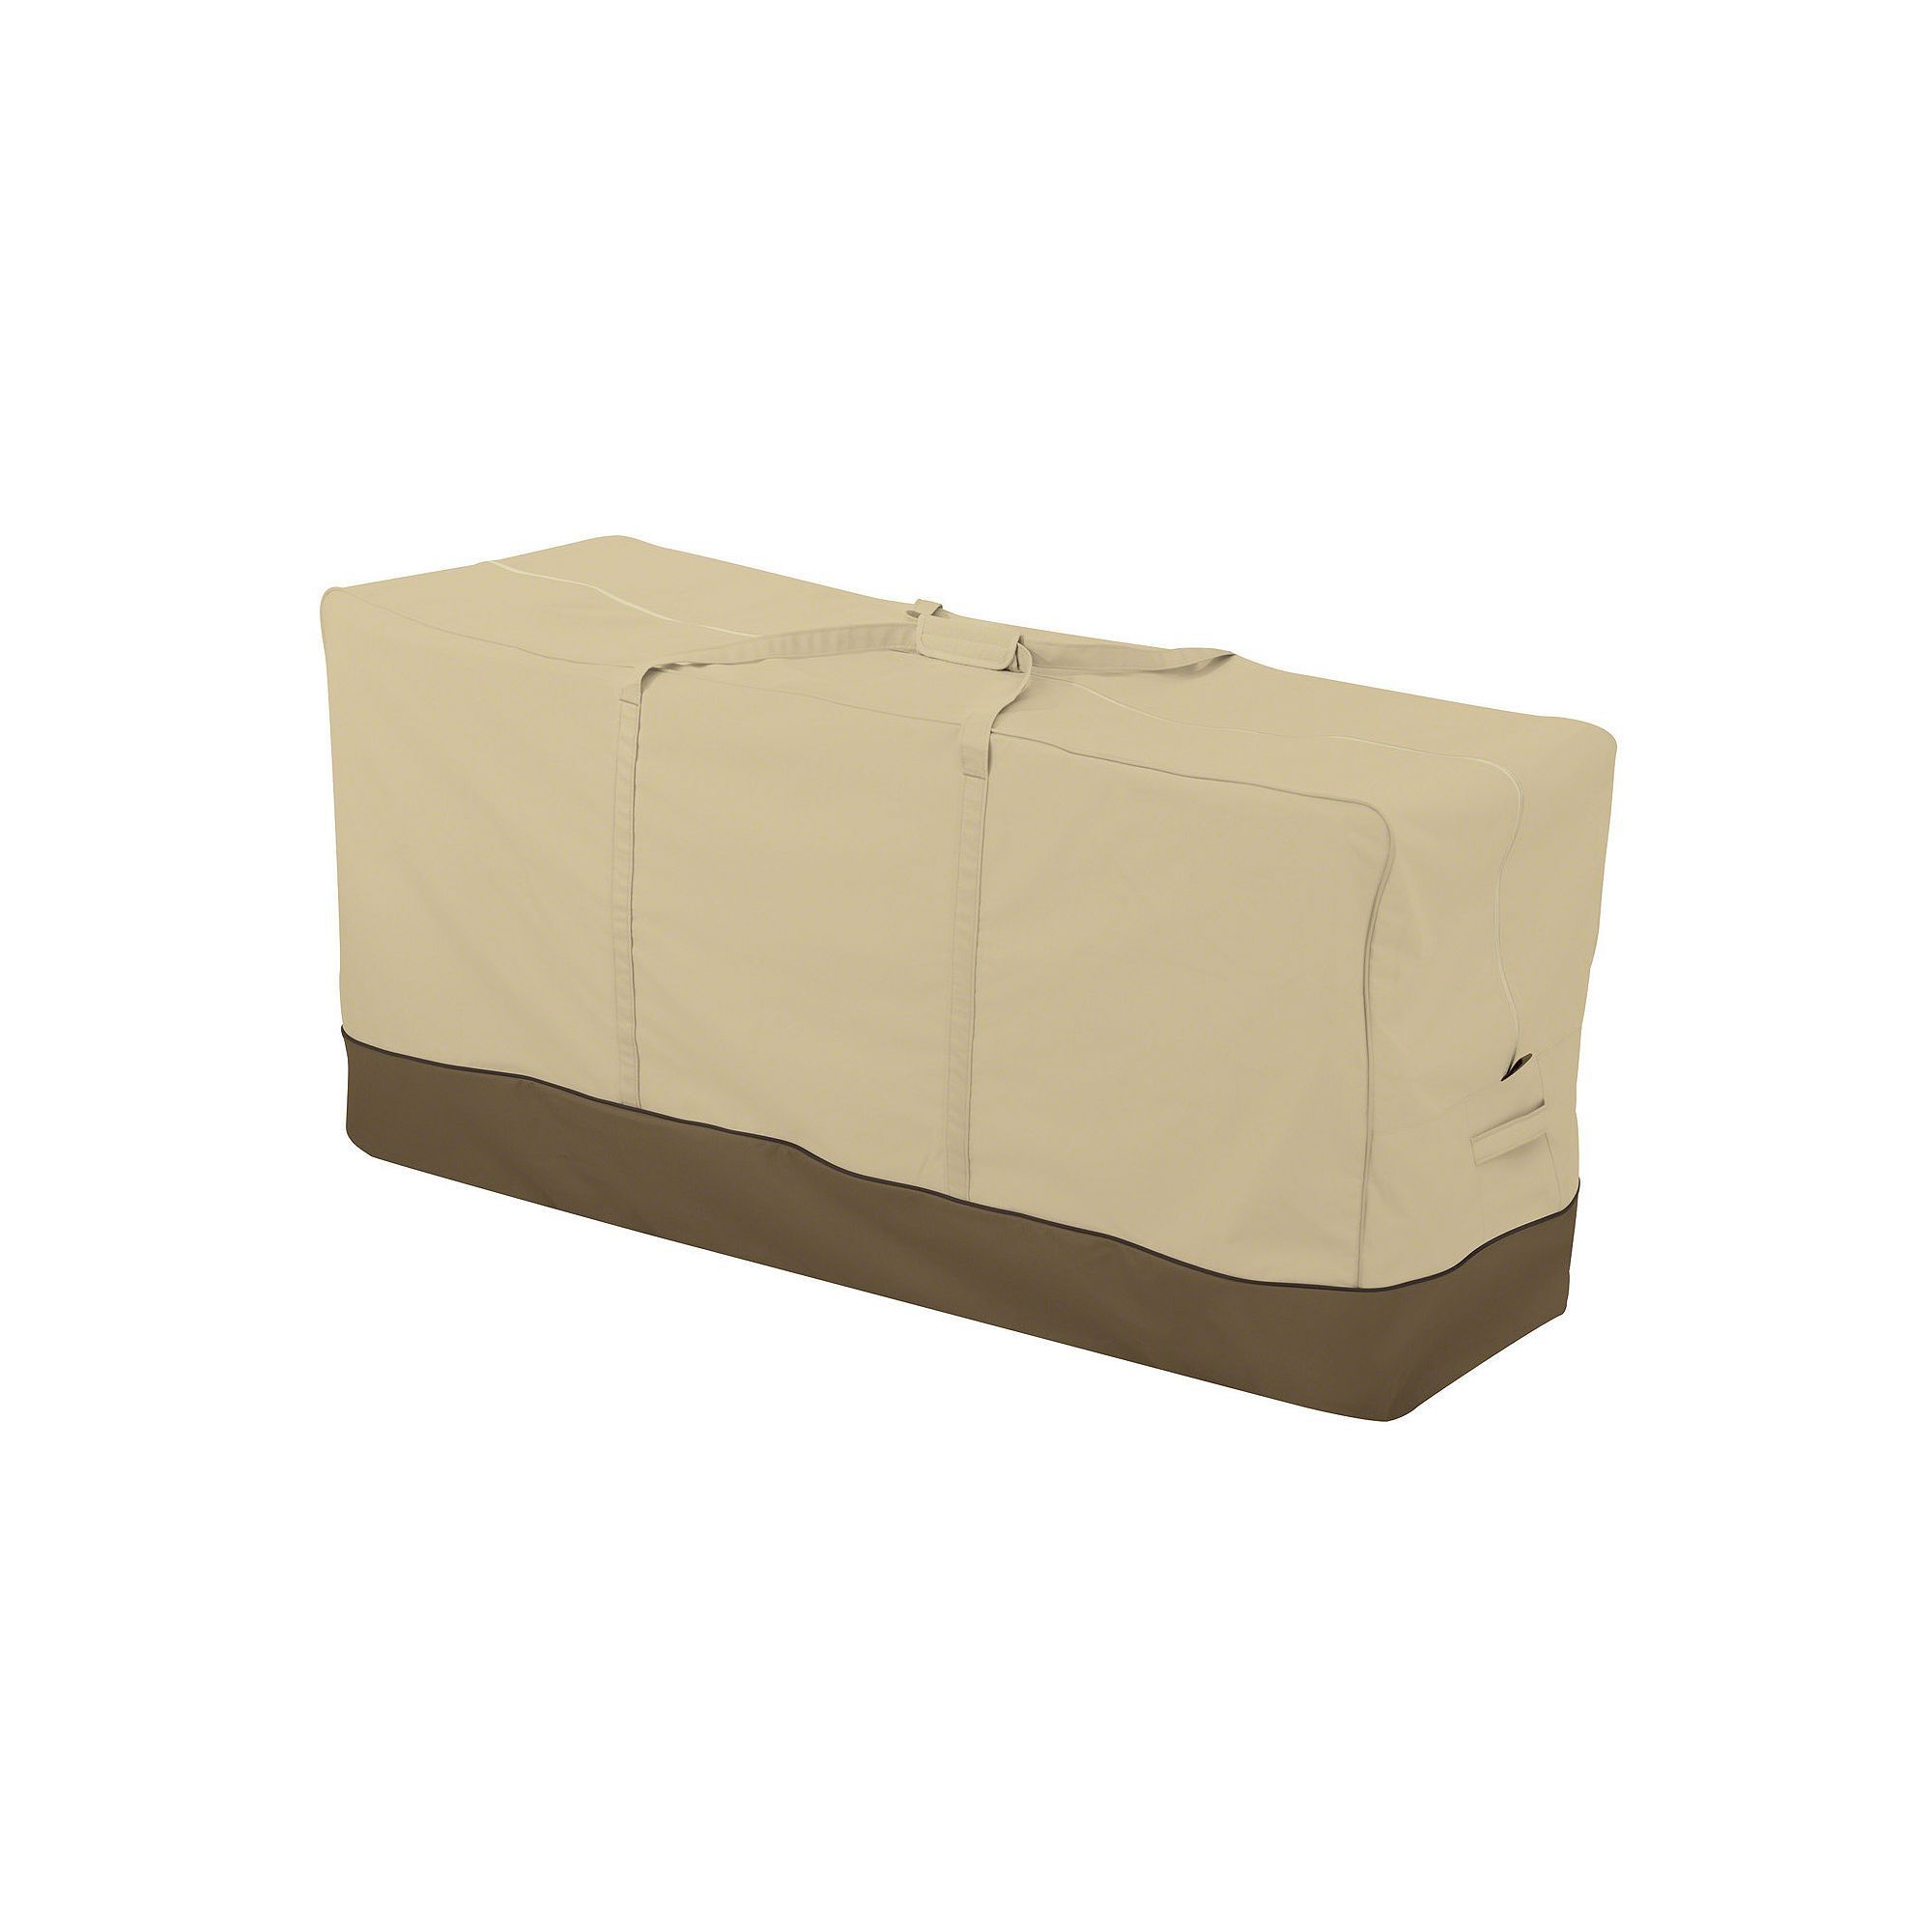 Wonderful Veranda Oversized Patio Cushion Storage Bag, Beig/Green (Beig/Khaki)